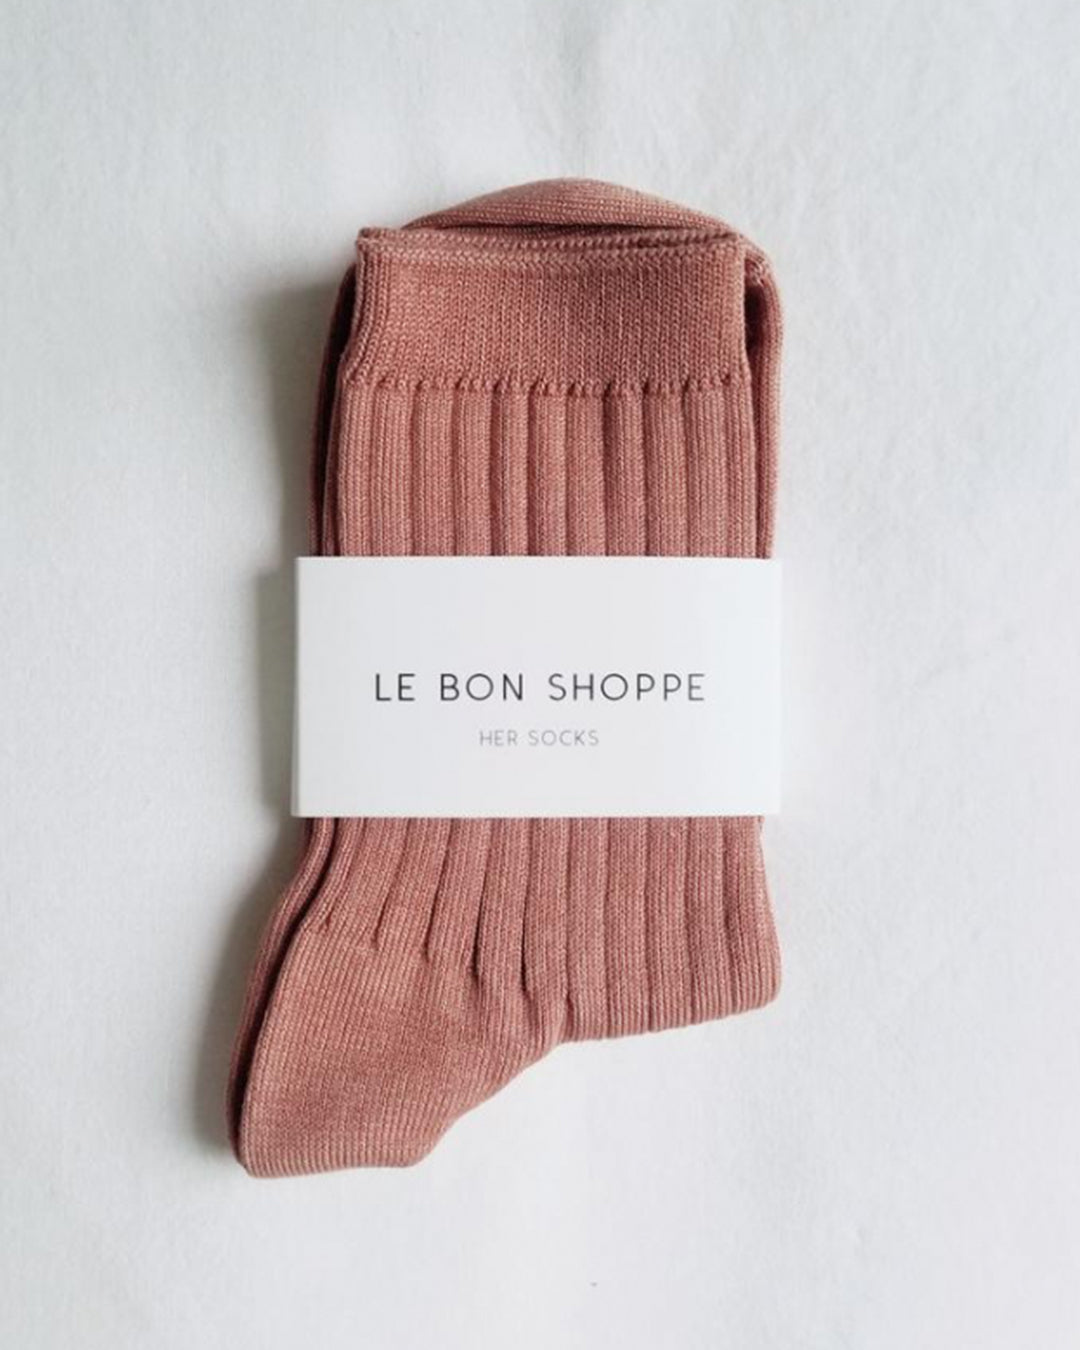 Le Bon Shoppe Her Socks in Nude Peach